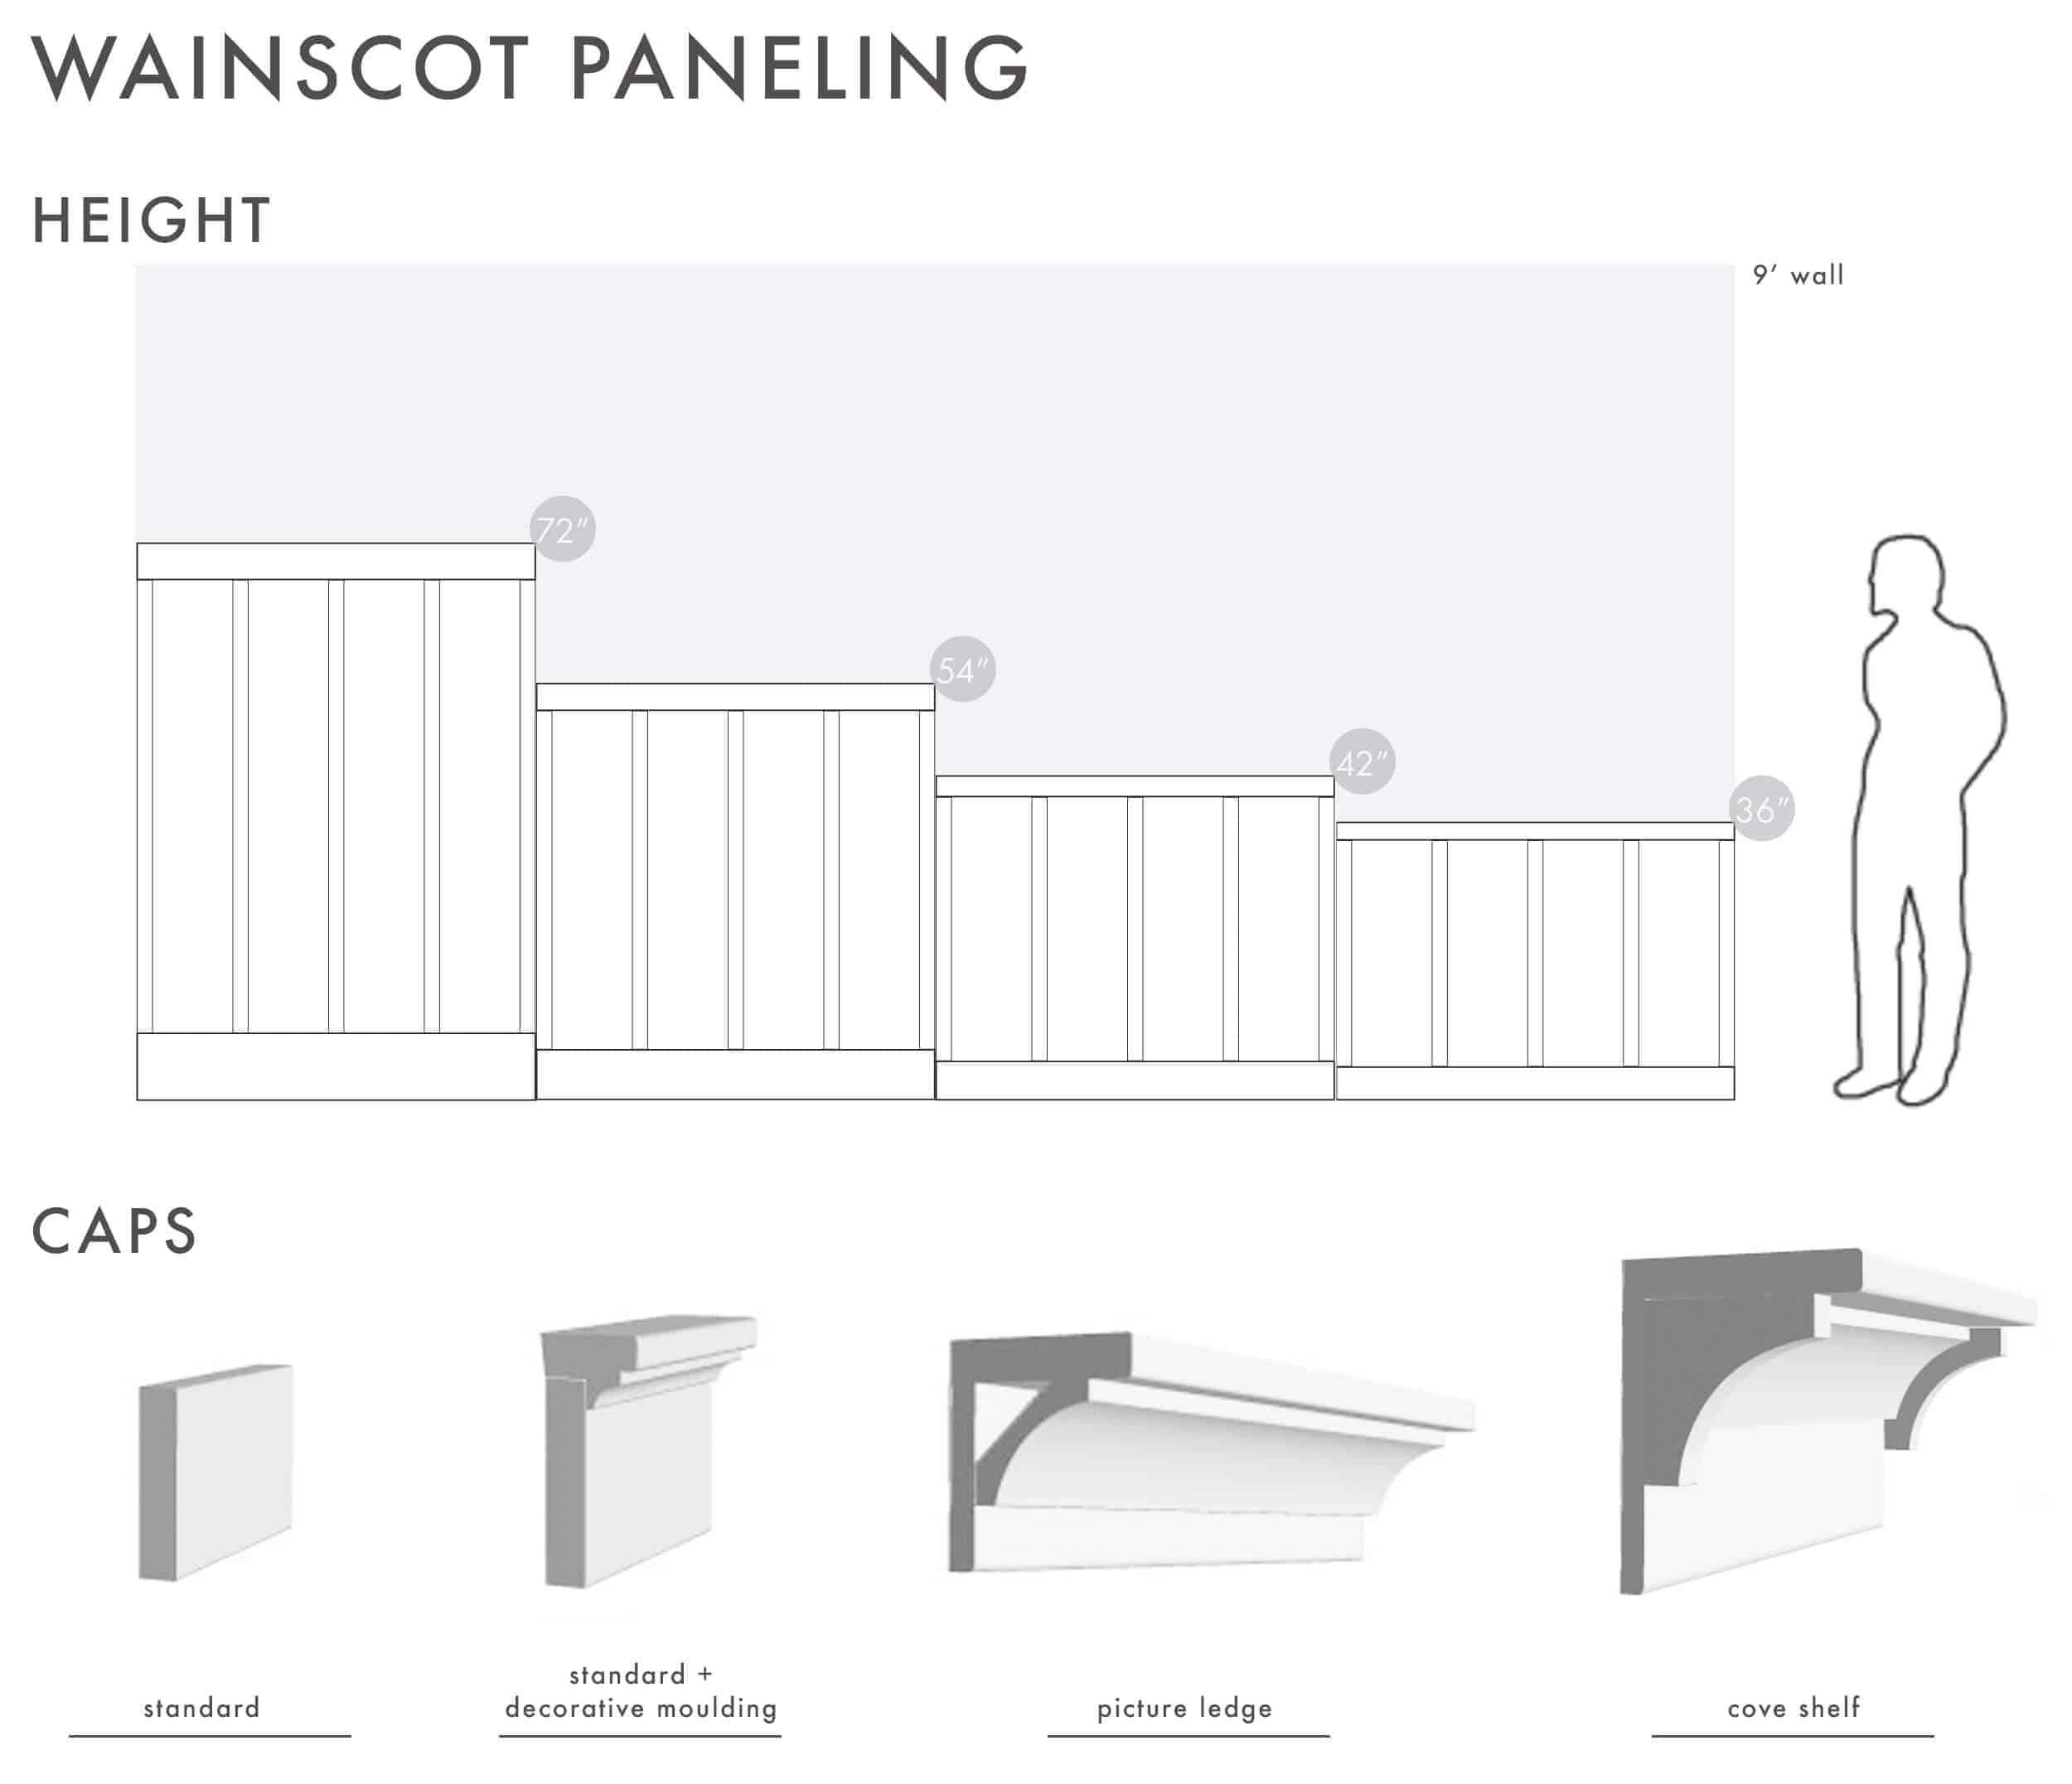 How To Add Character And Charm To Boring Architecture And Houses Wainscot Paneling Infographic